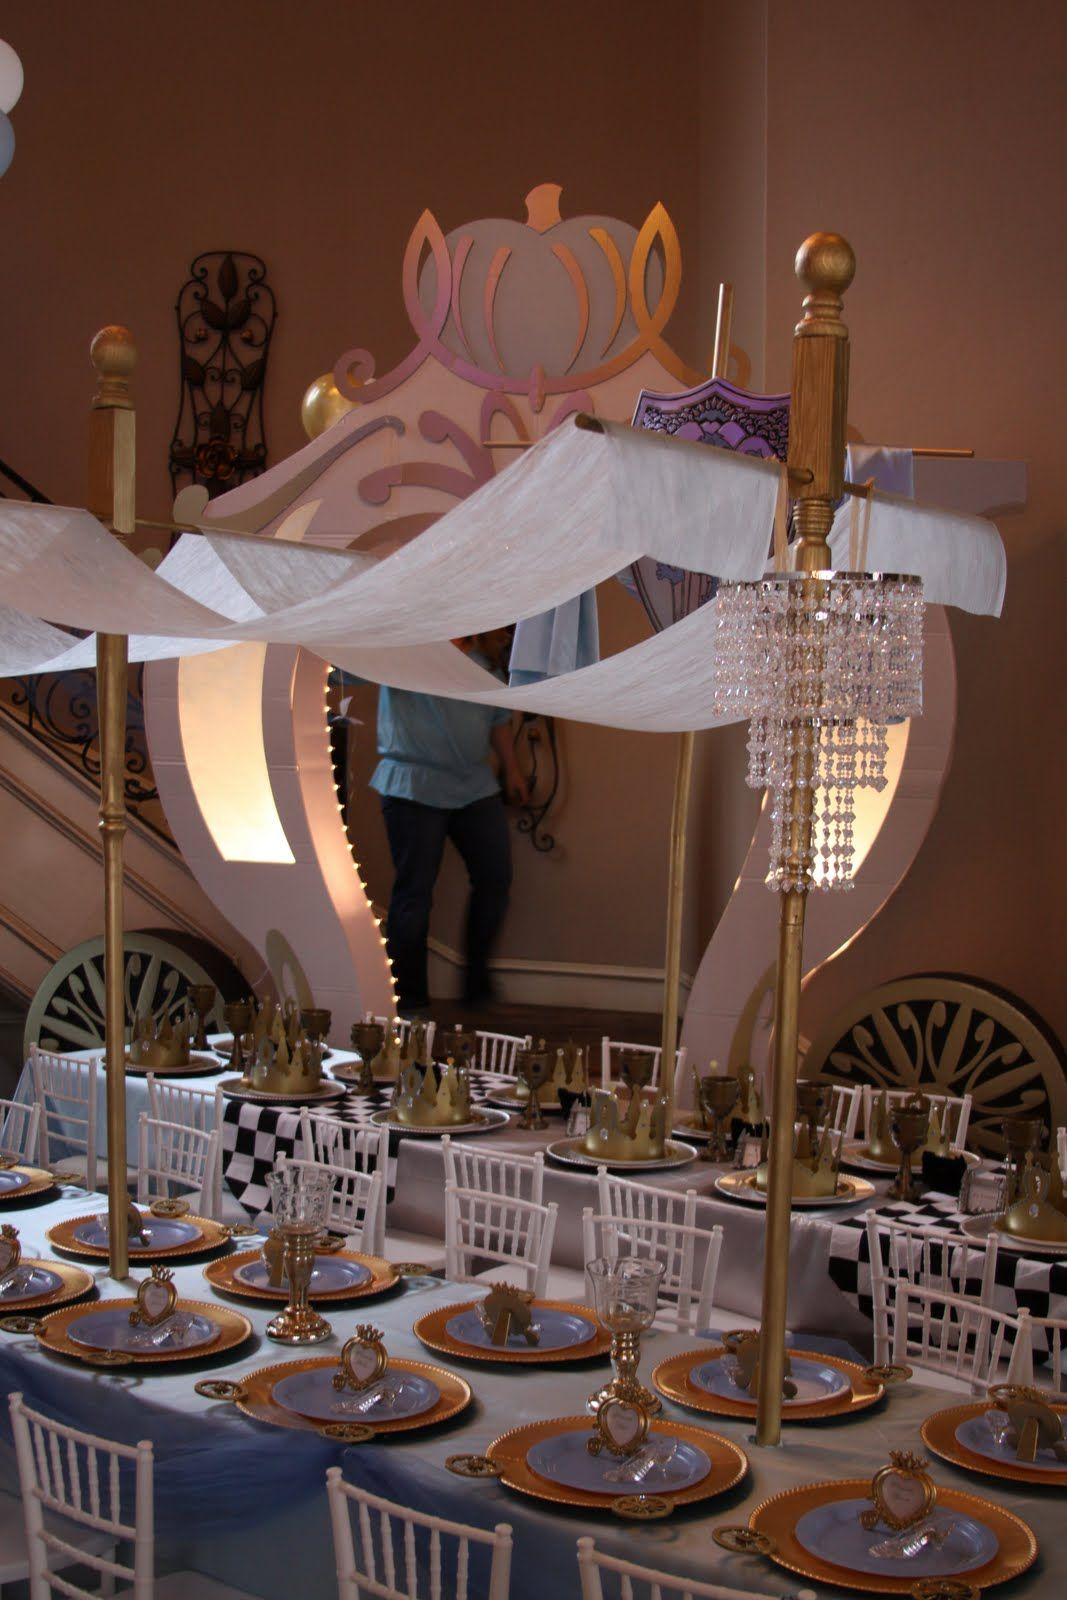 Royal ball party ideas pinterest royals princess for Ball decoration ideas